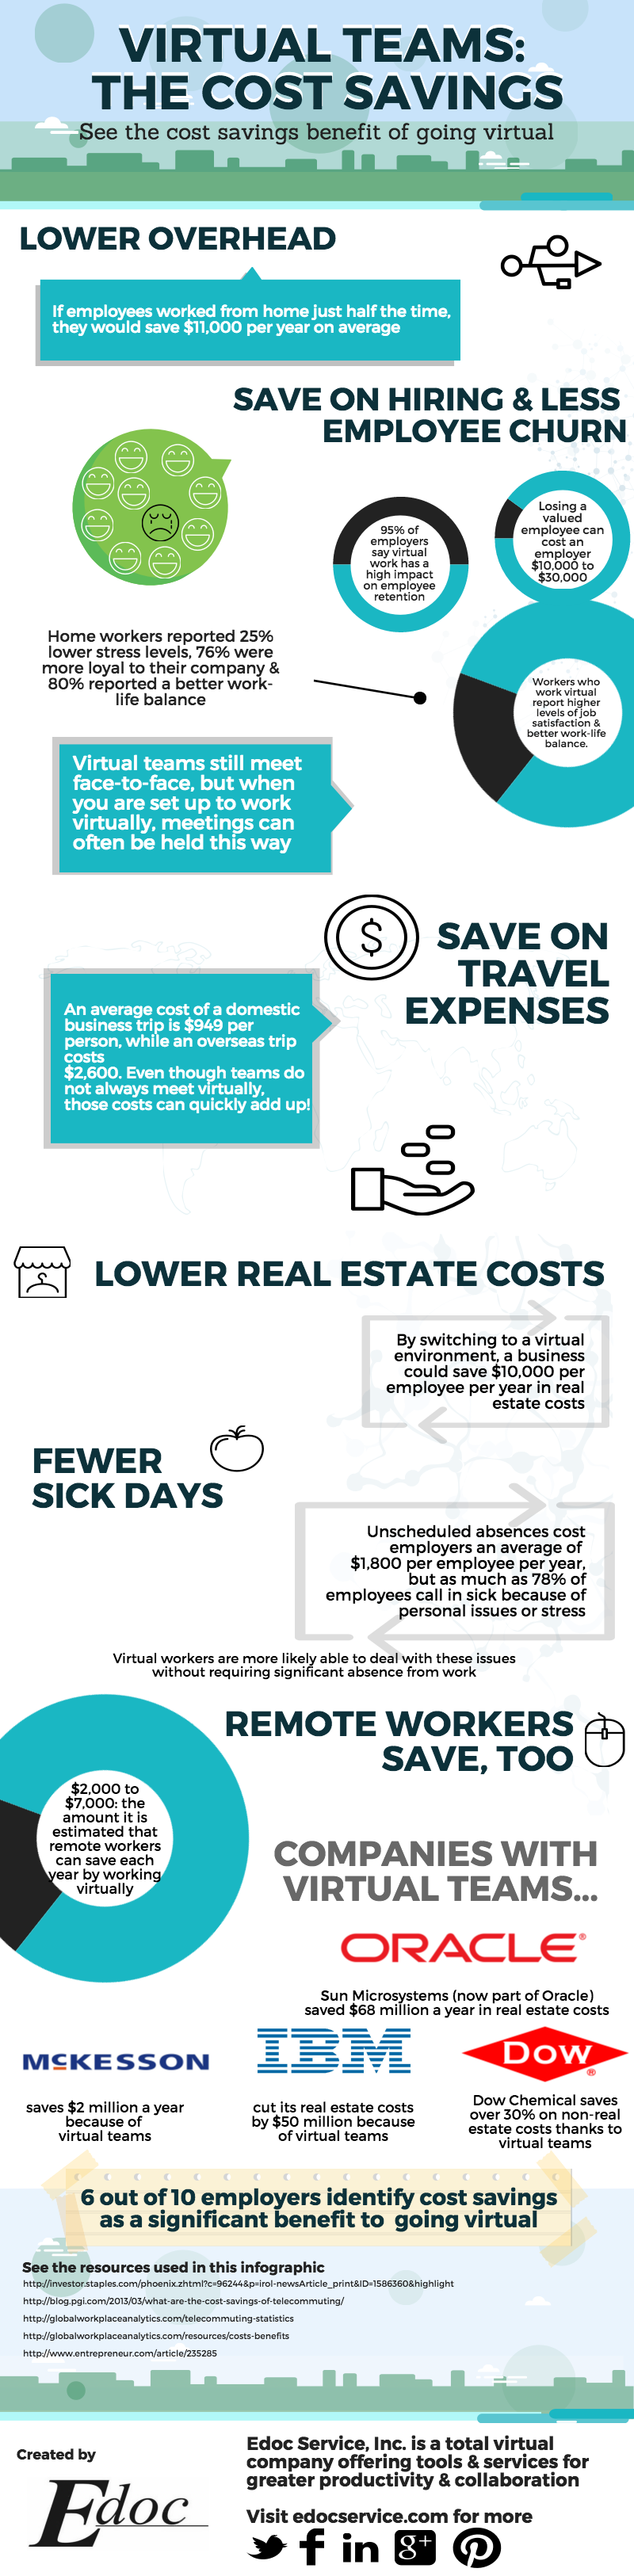 The cost savings of being a virtual company